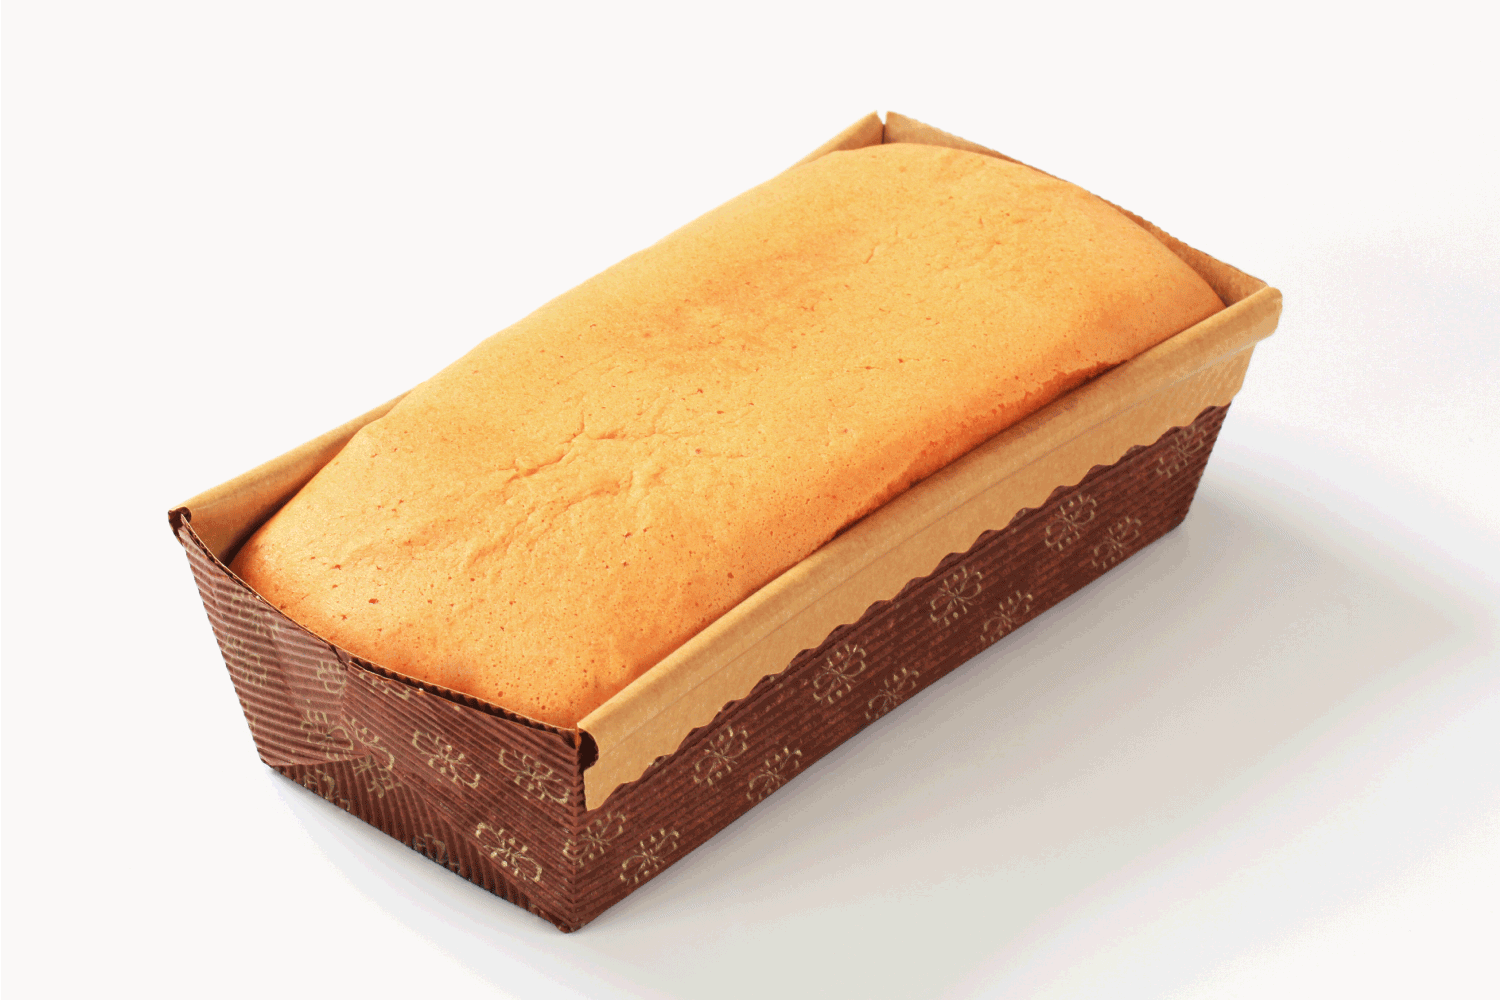 homemade sponge cake in paper loaf pan. Can You Bake A Cake In A Loaf Pan